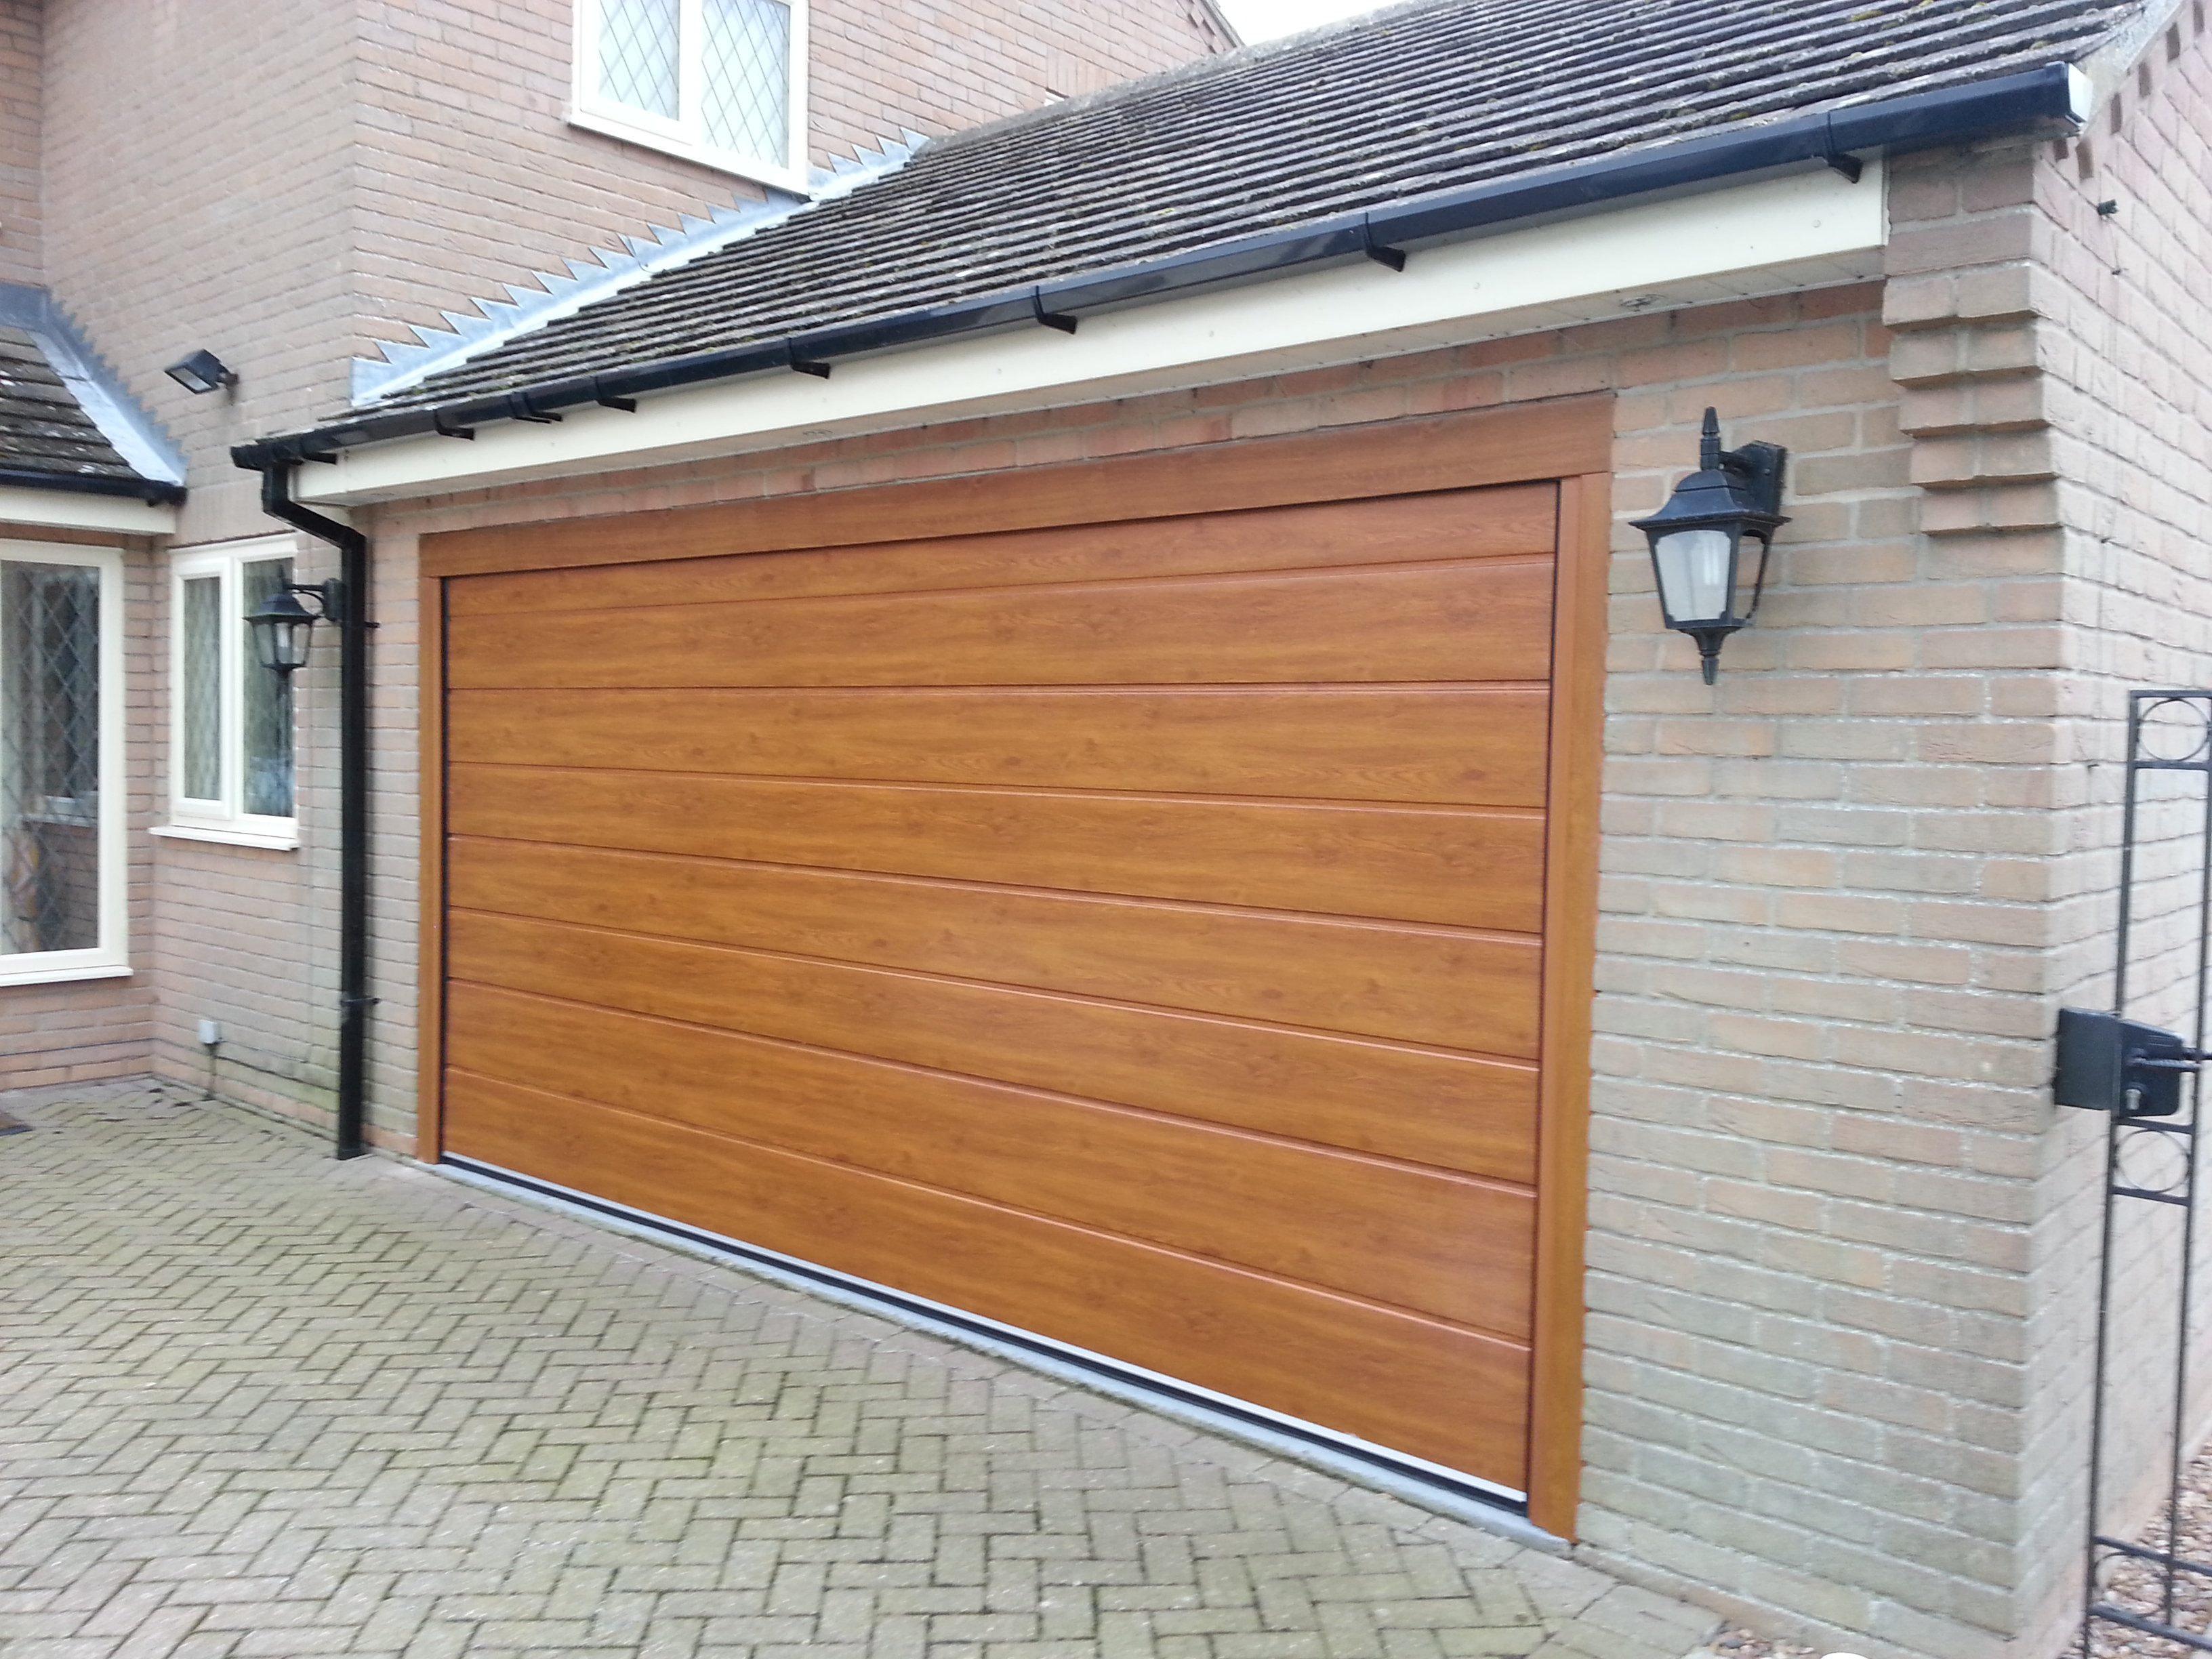 New insulated garage door grantham east midlands for Garage doors uk